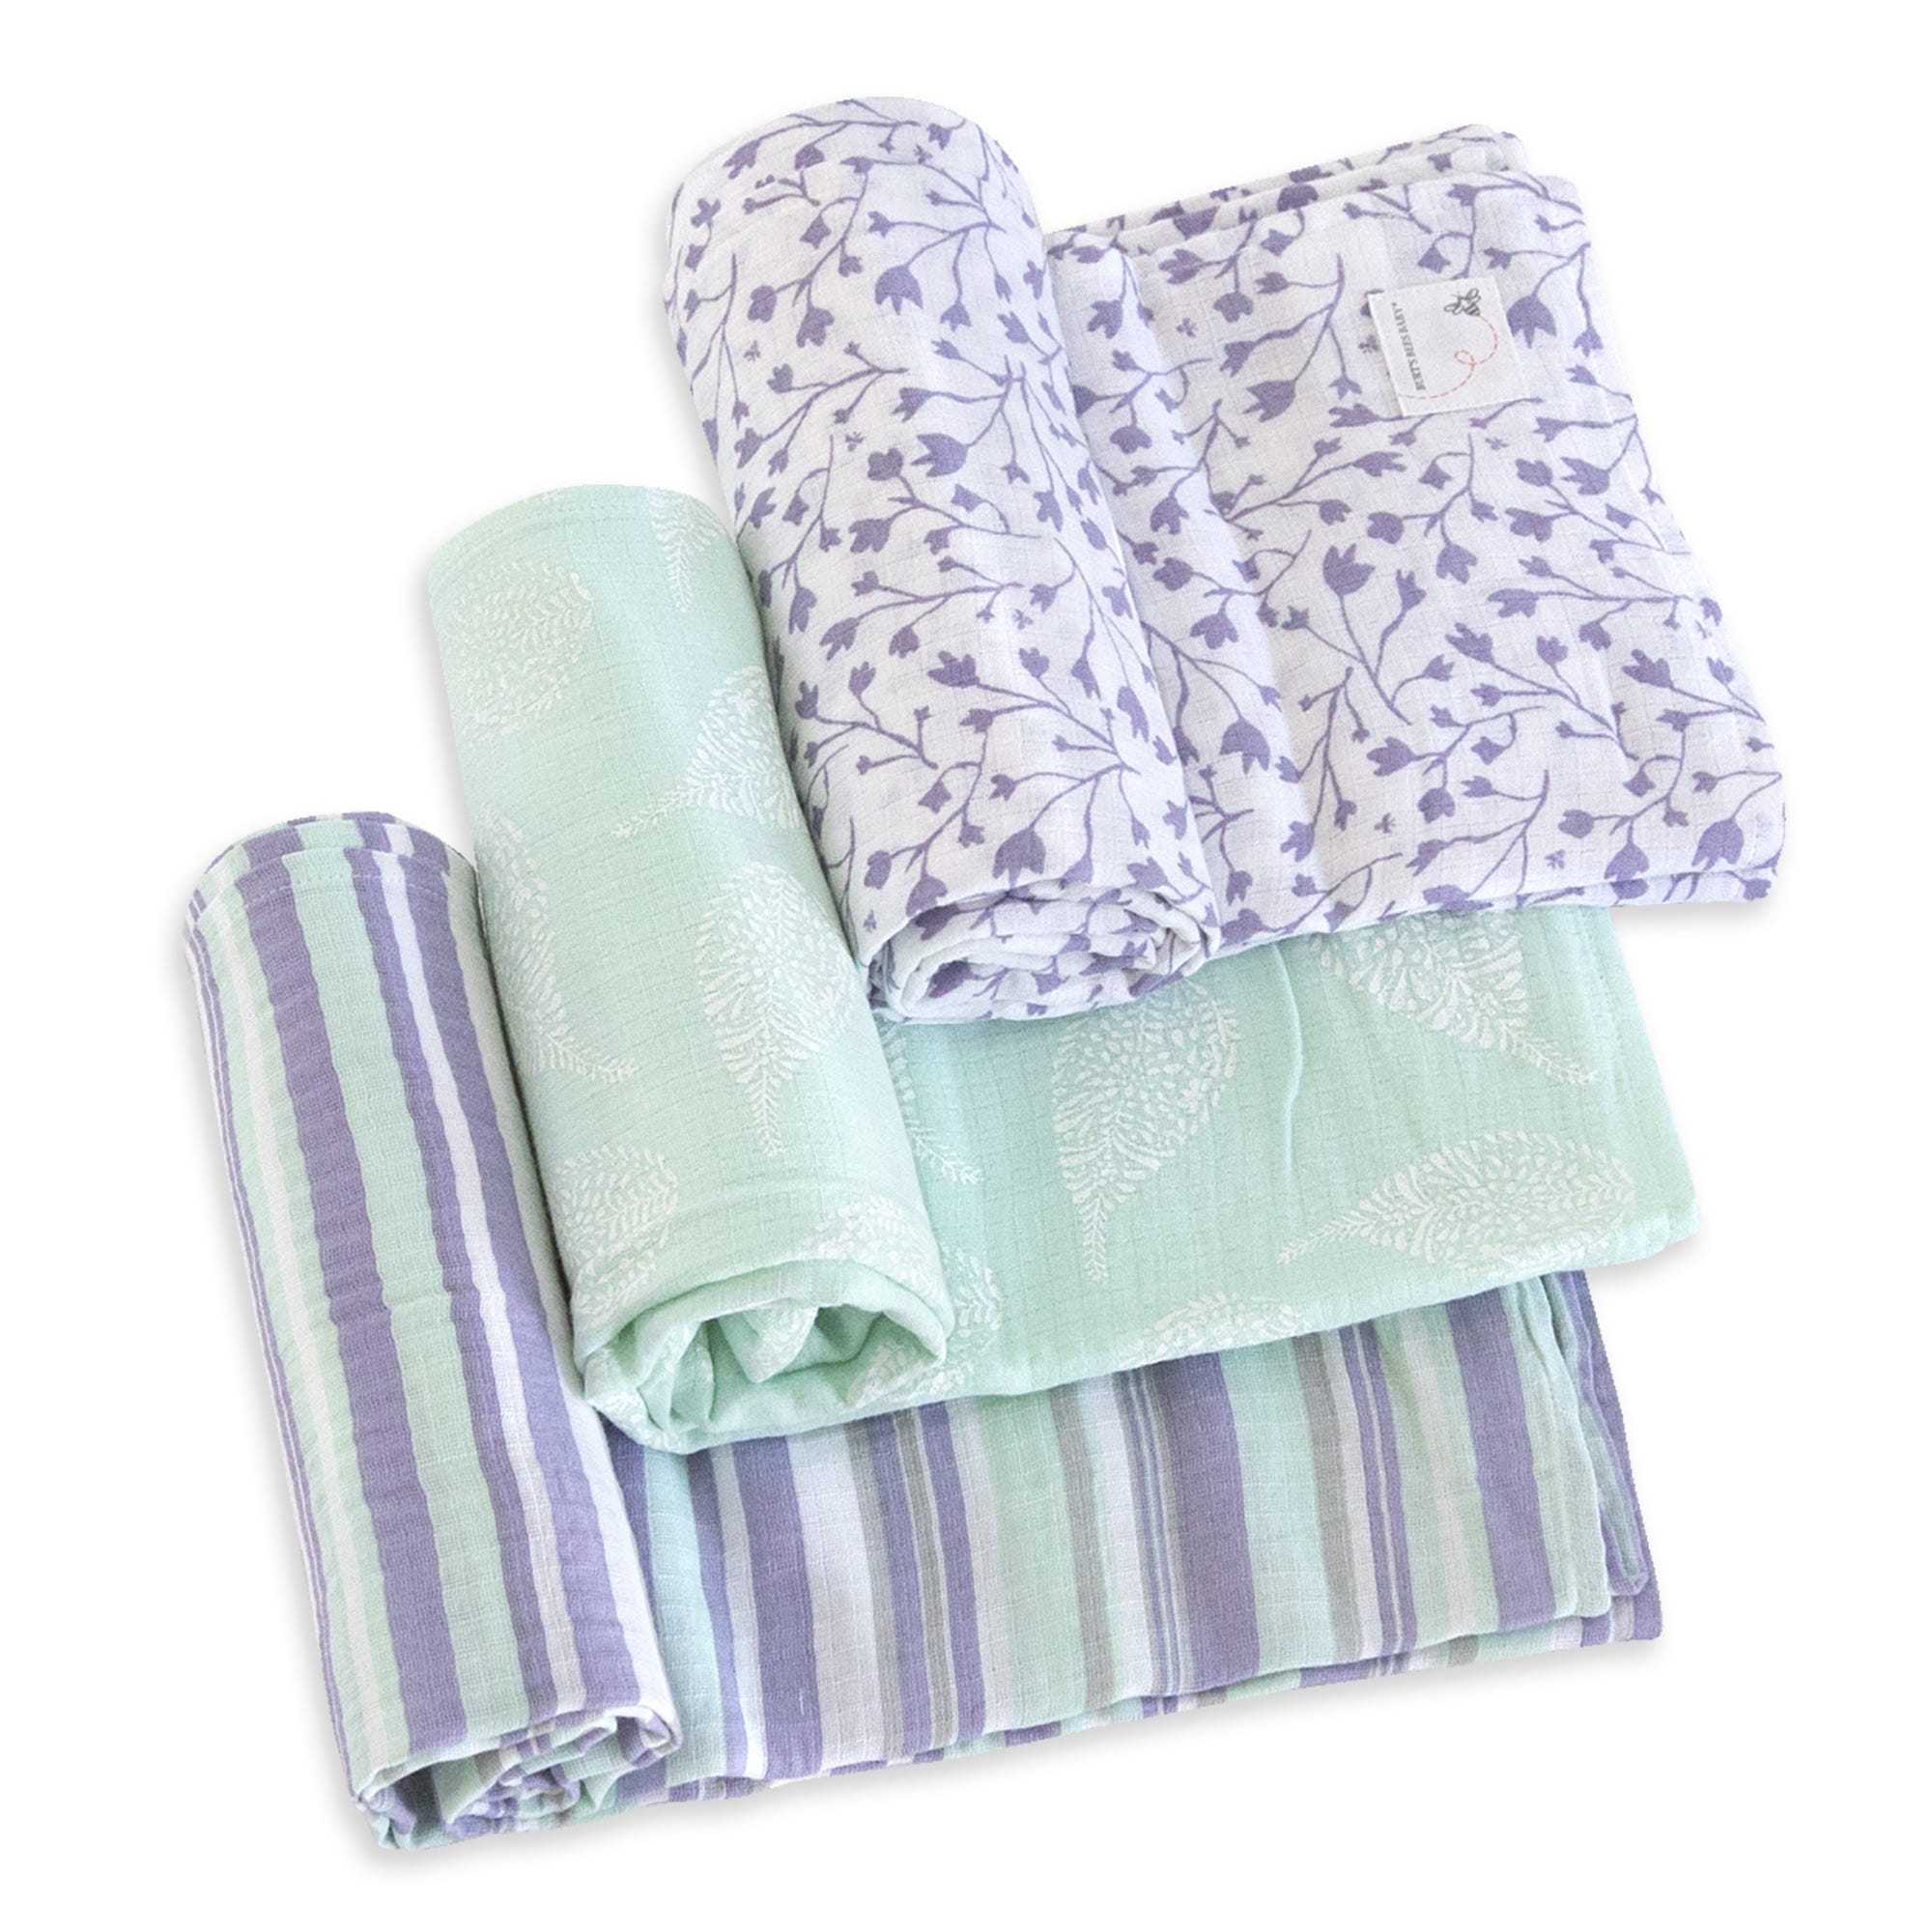 Floral Forest Organic Muslin Swaddle Blankets 3 Pack